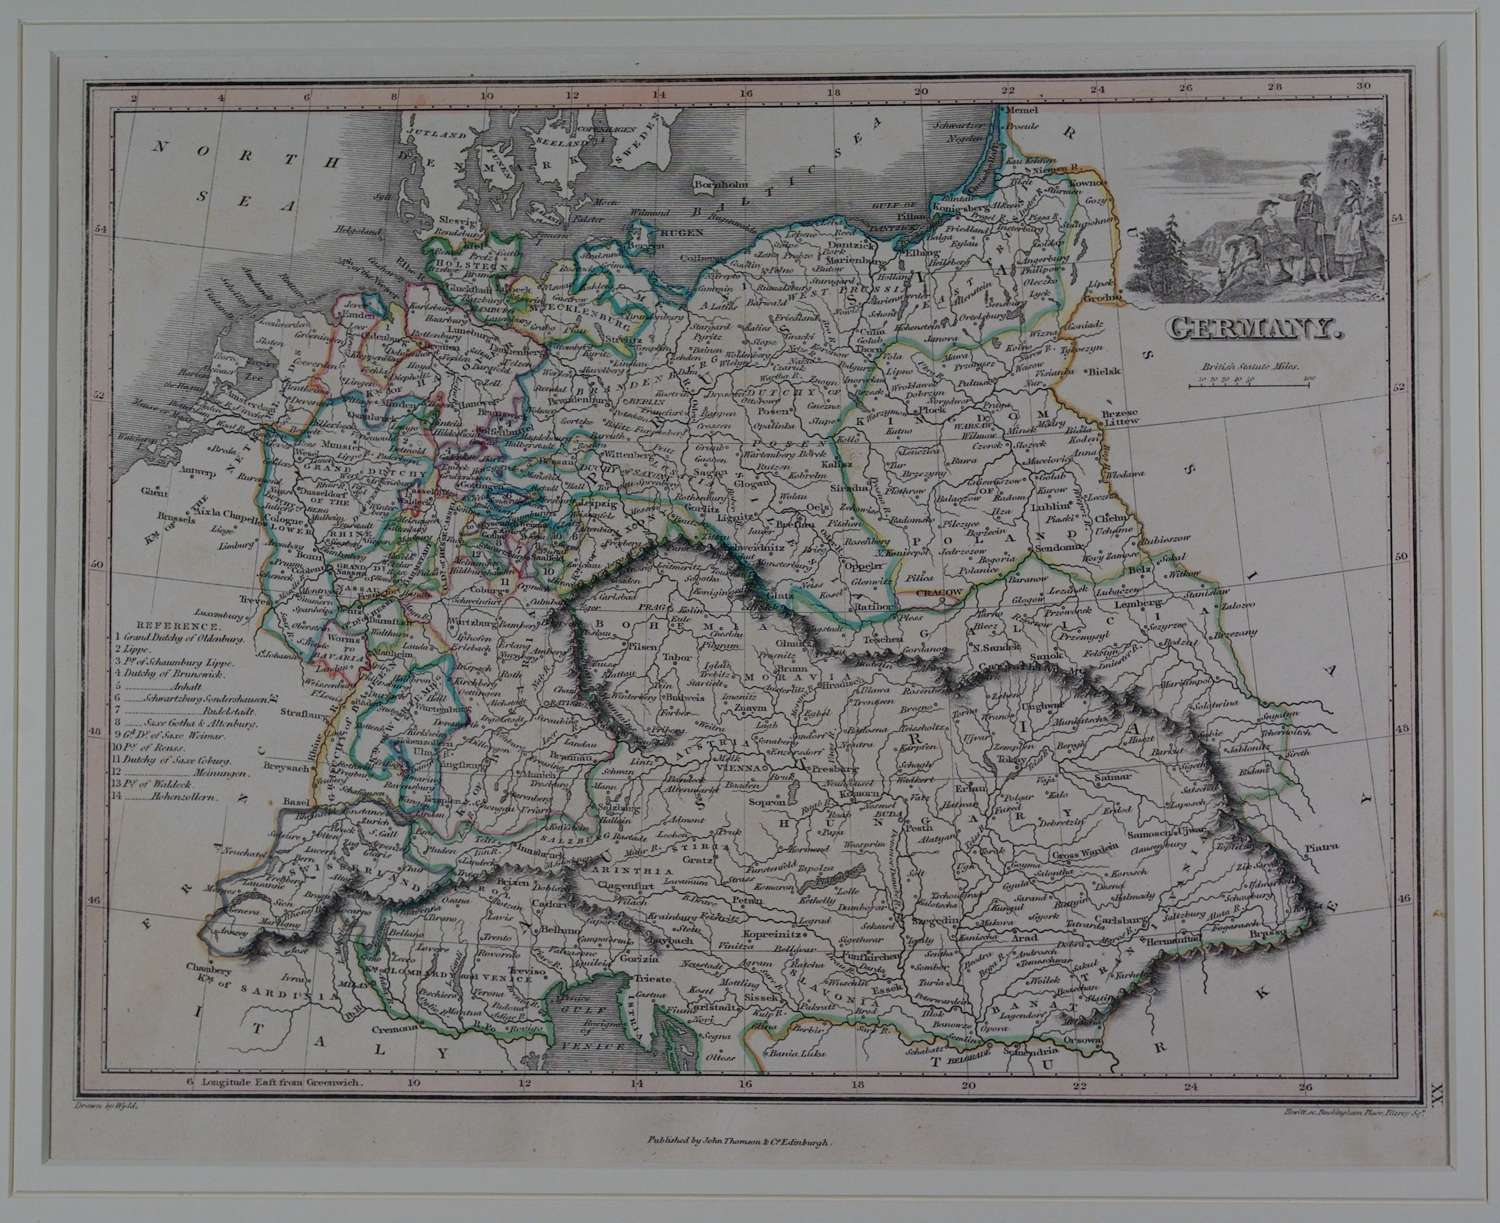 Germany by J Wild and NR Hewitt